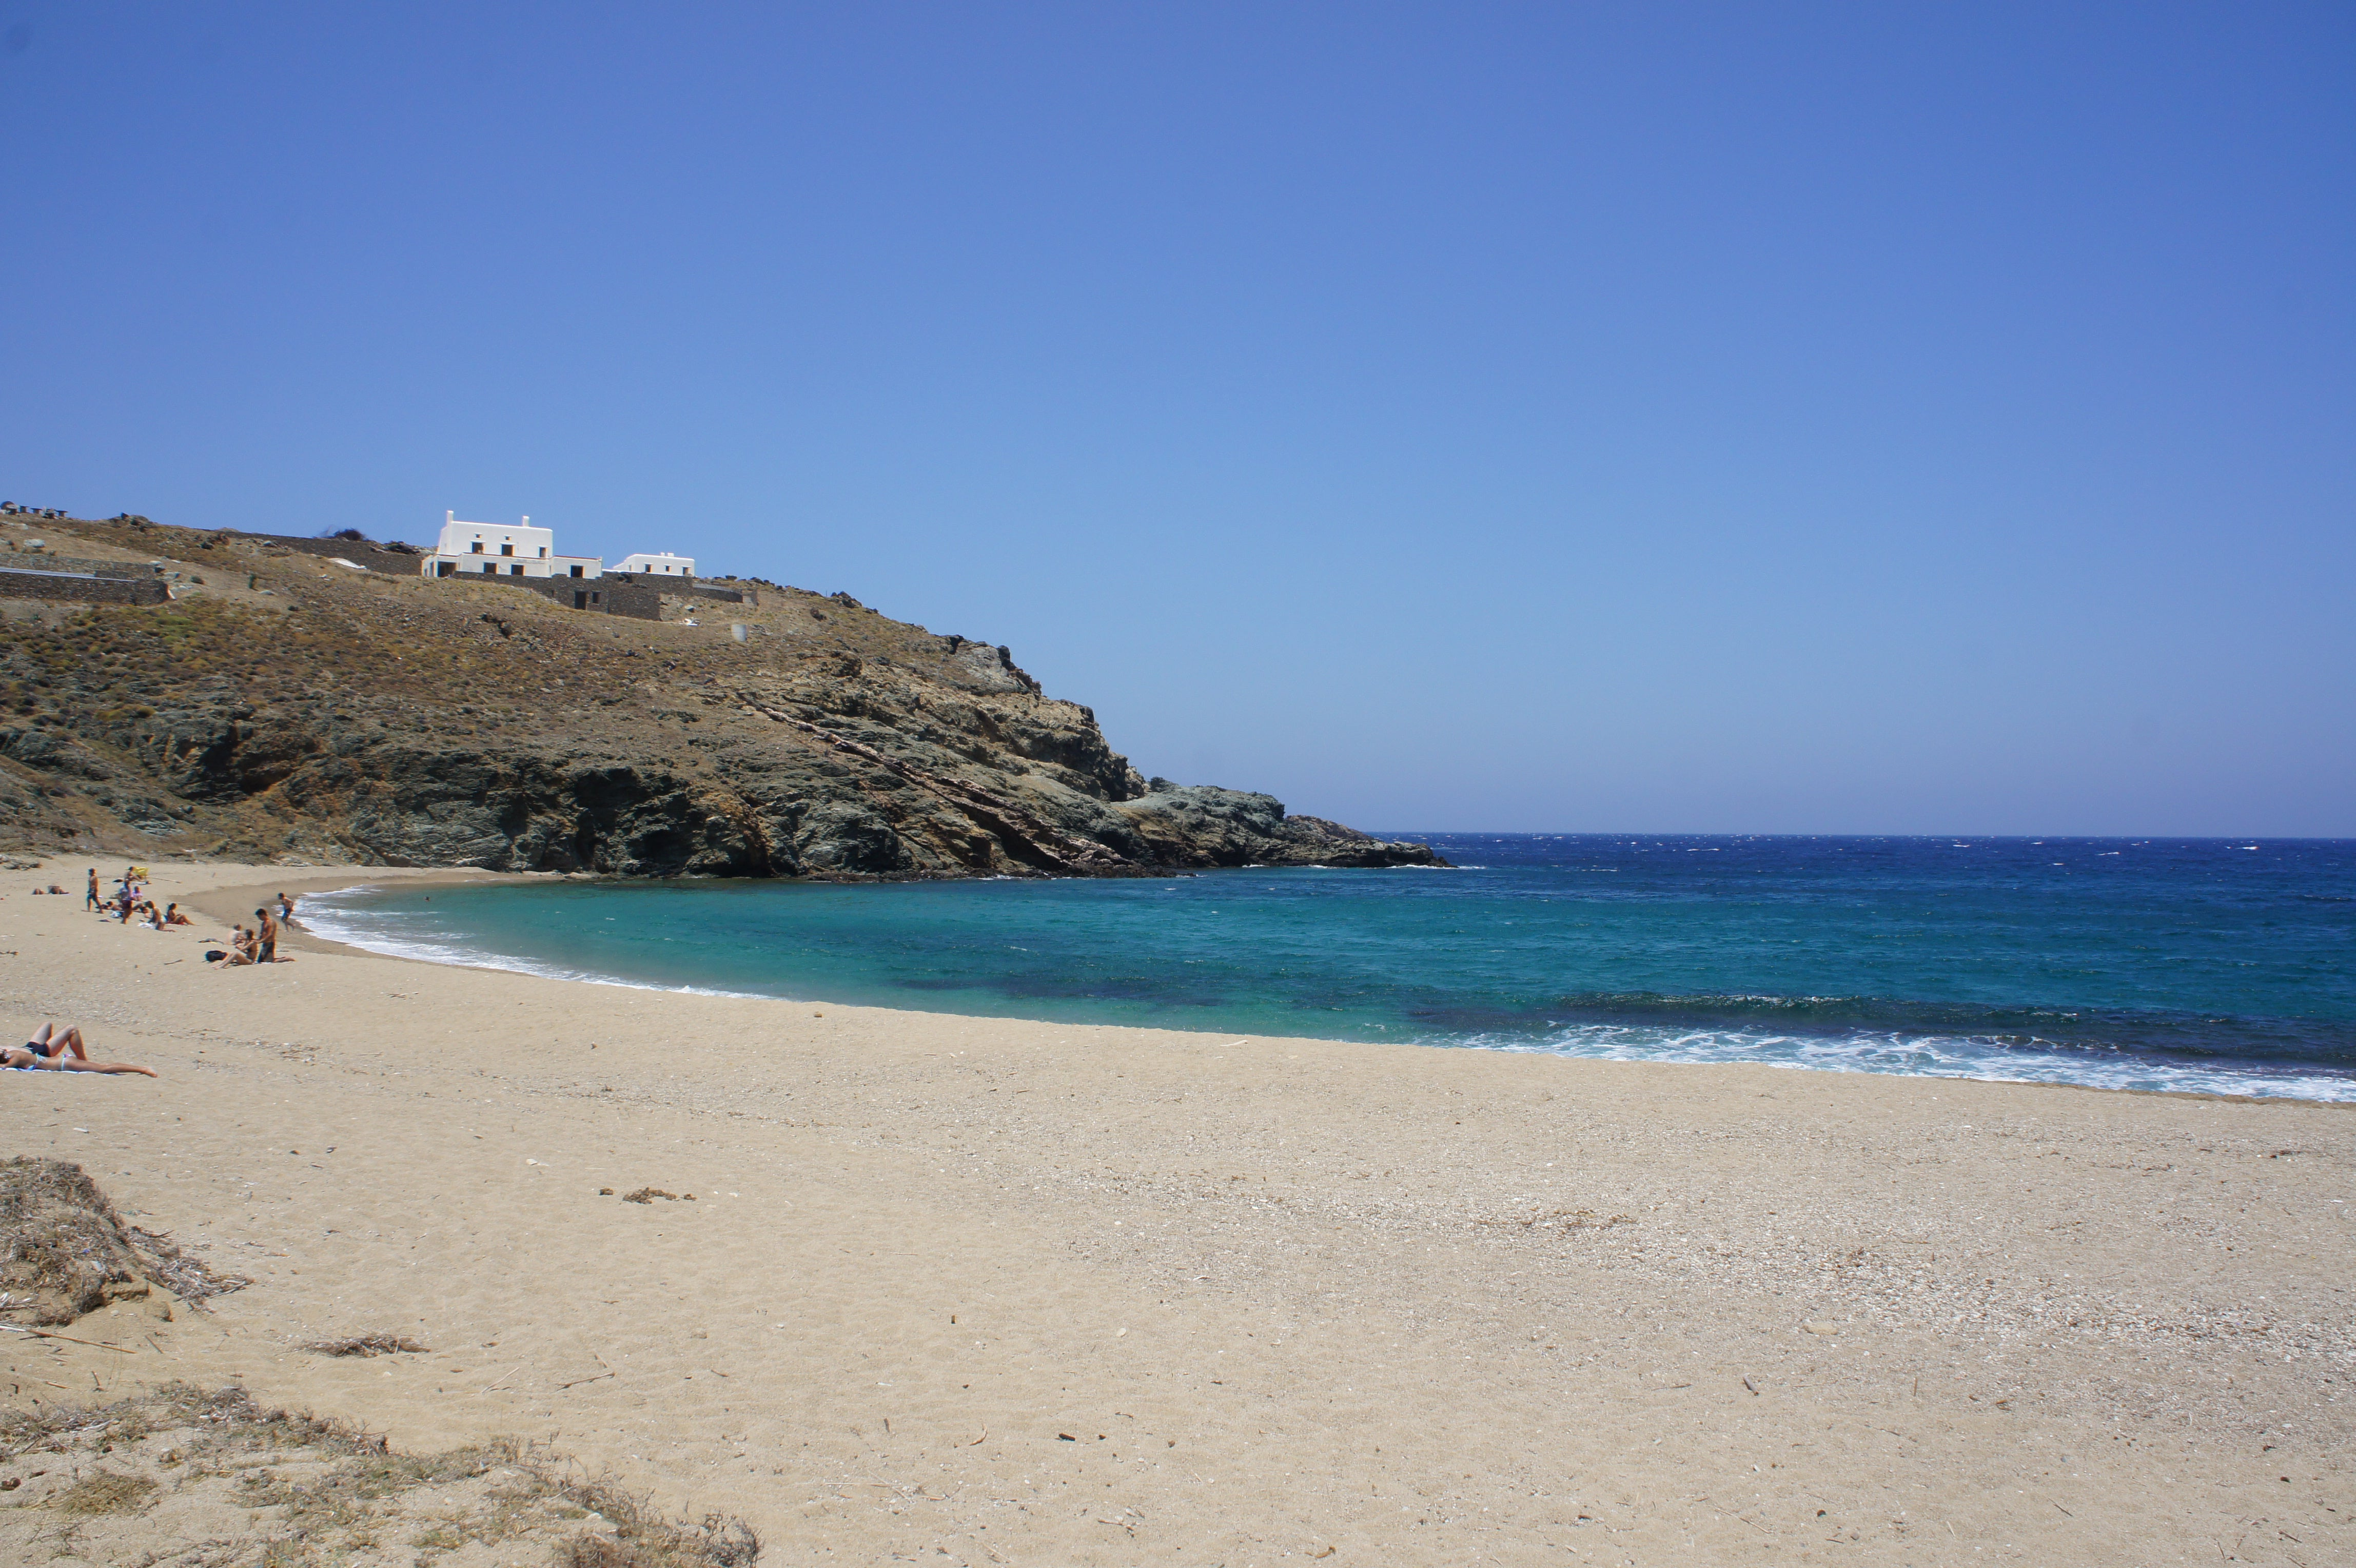 Mar en Playas de Mikonos